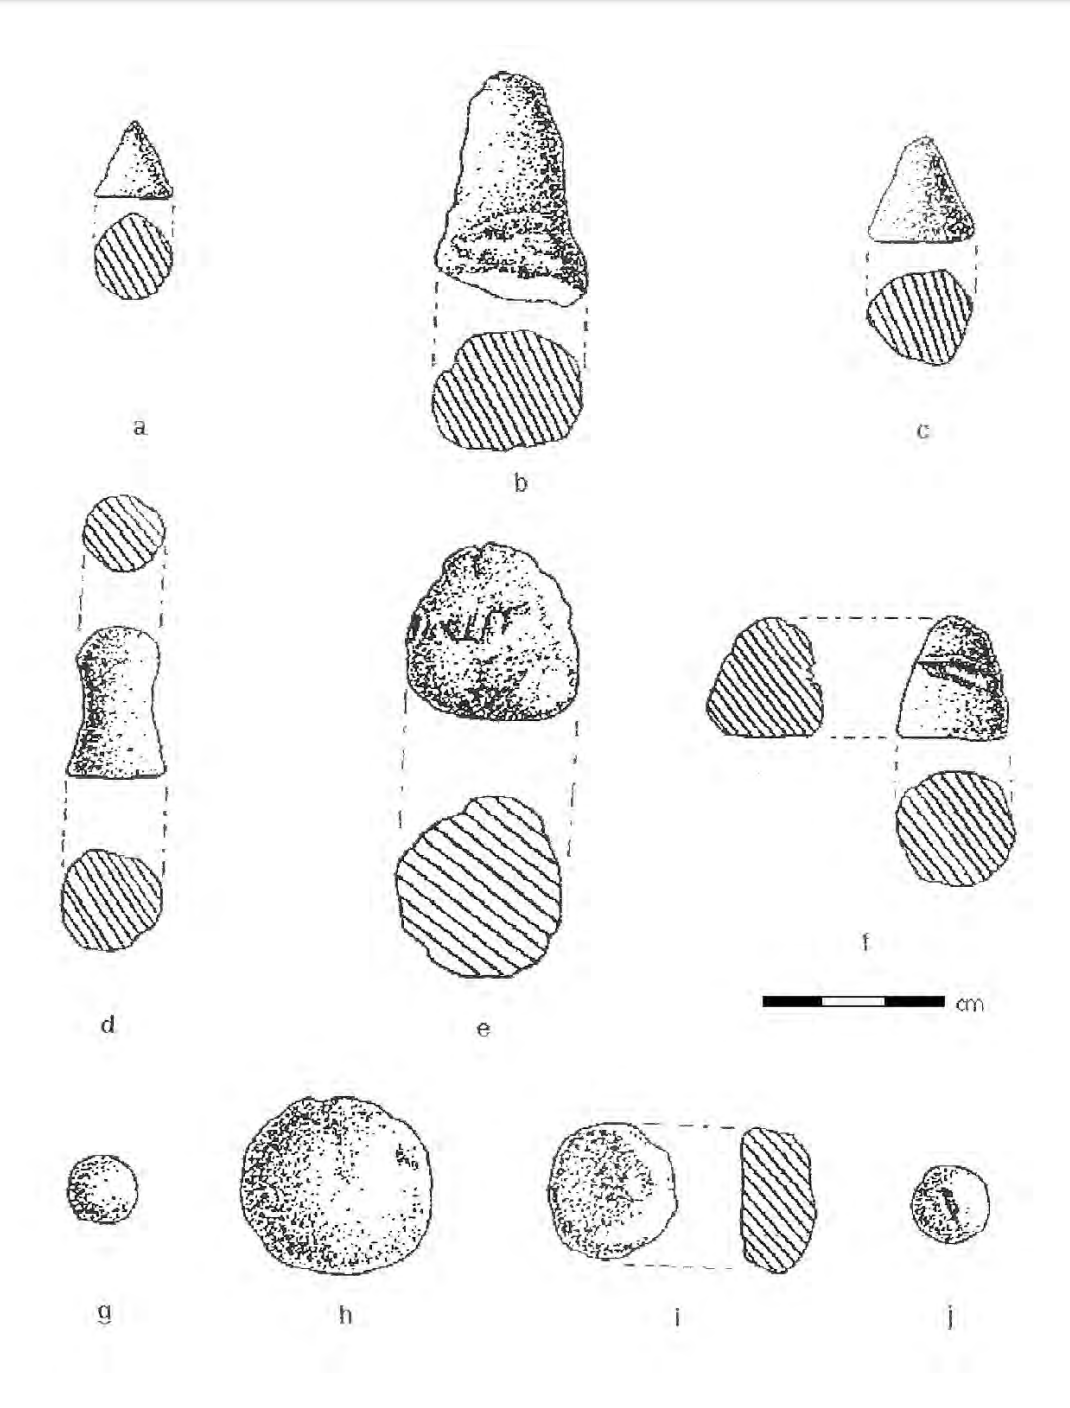 Drawings of profiles and cross sections of the various types